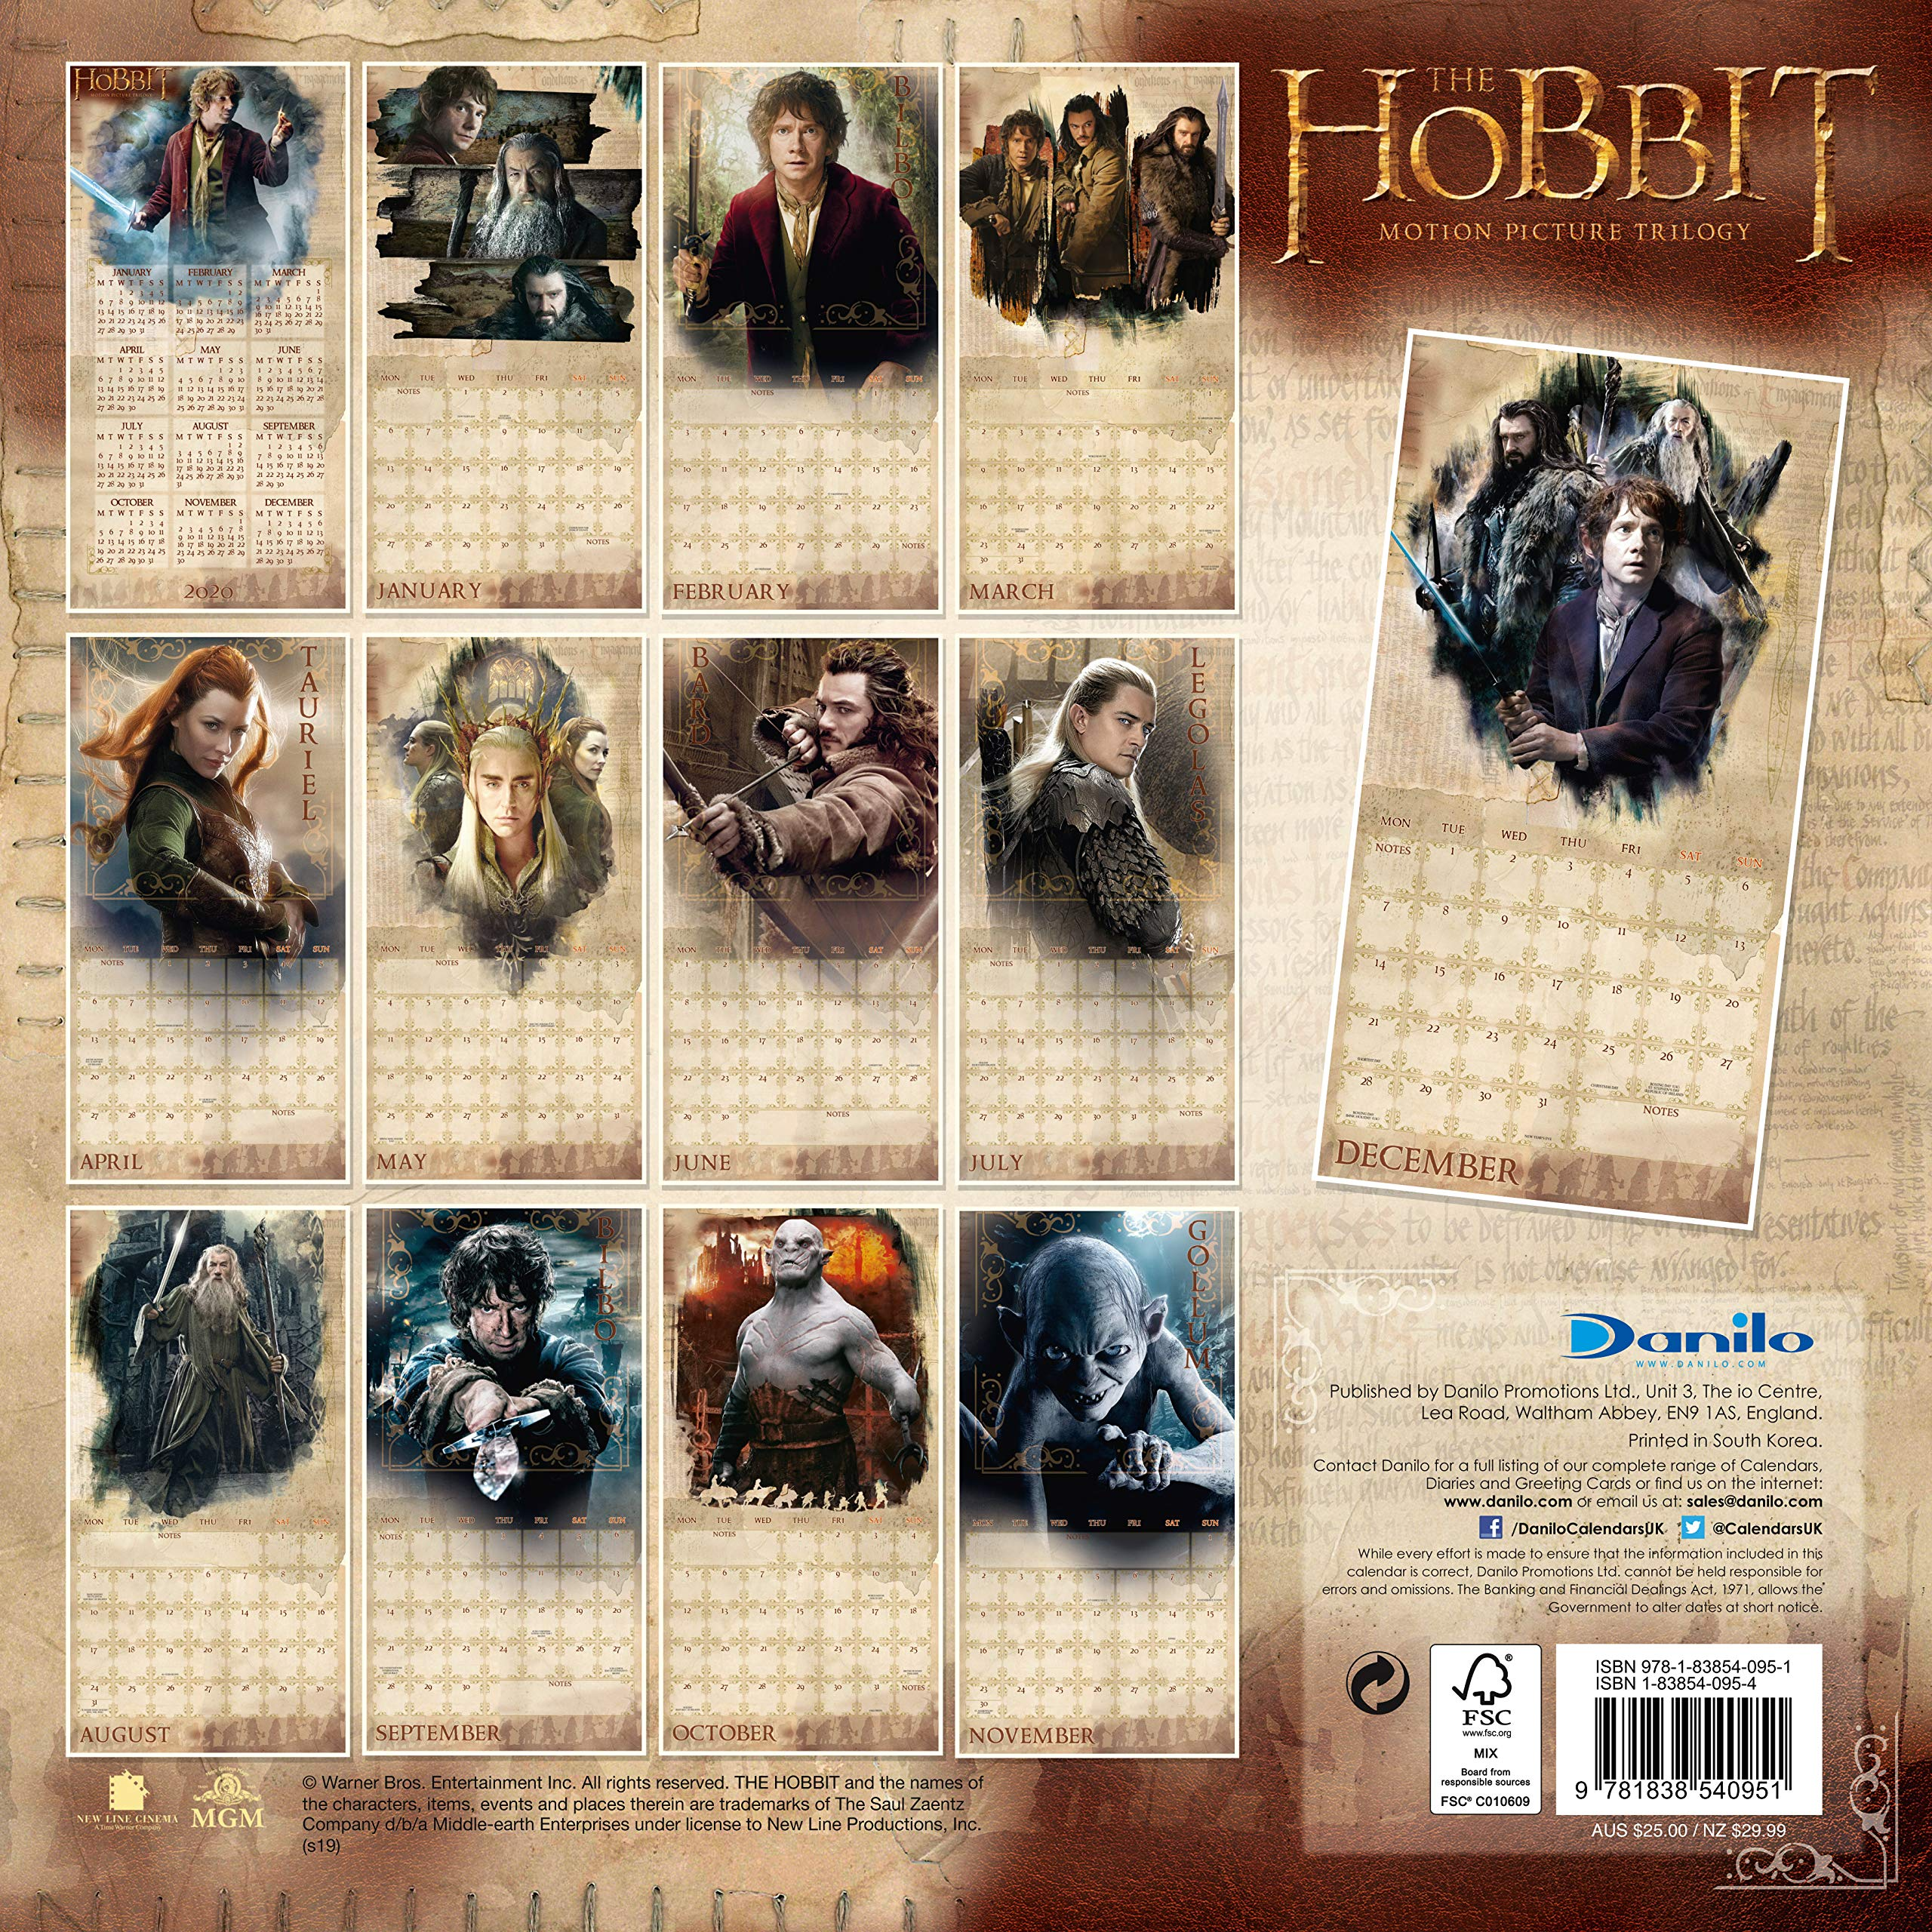 The Hobbit Lord Of The Rings 2020 Calendar Official Square Wall Format Calendar The Hobbit Lord Of The Rings 9781838540951 Amazon Com Books